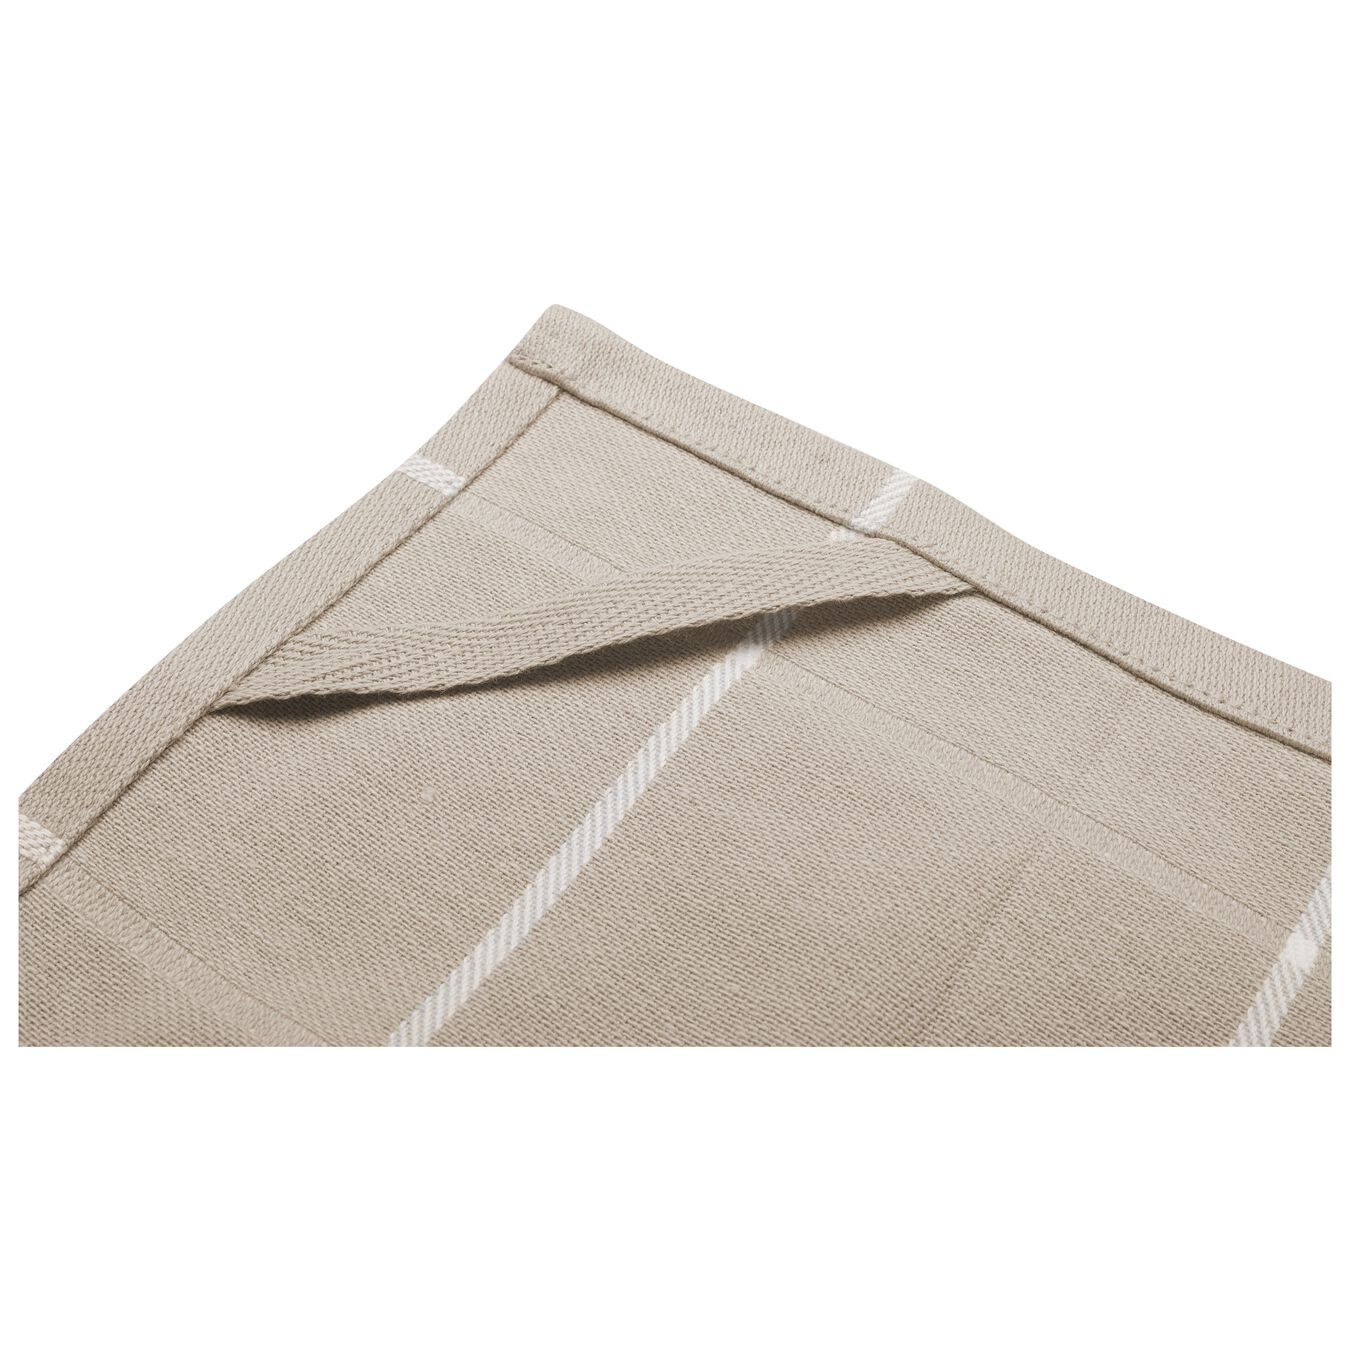 2 Piece Cotton Kitchen towel set checkered, taupe,,large 5